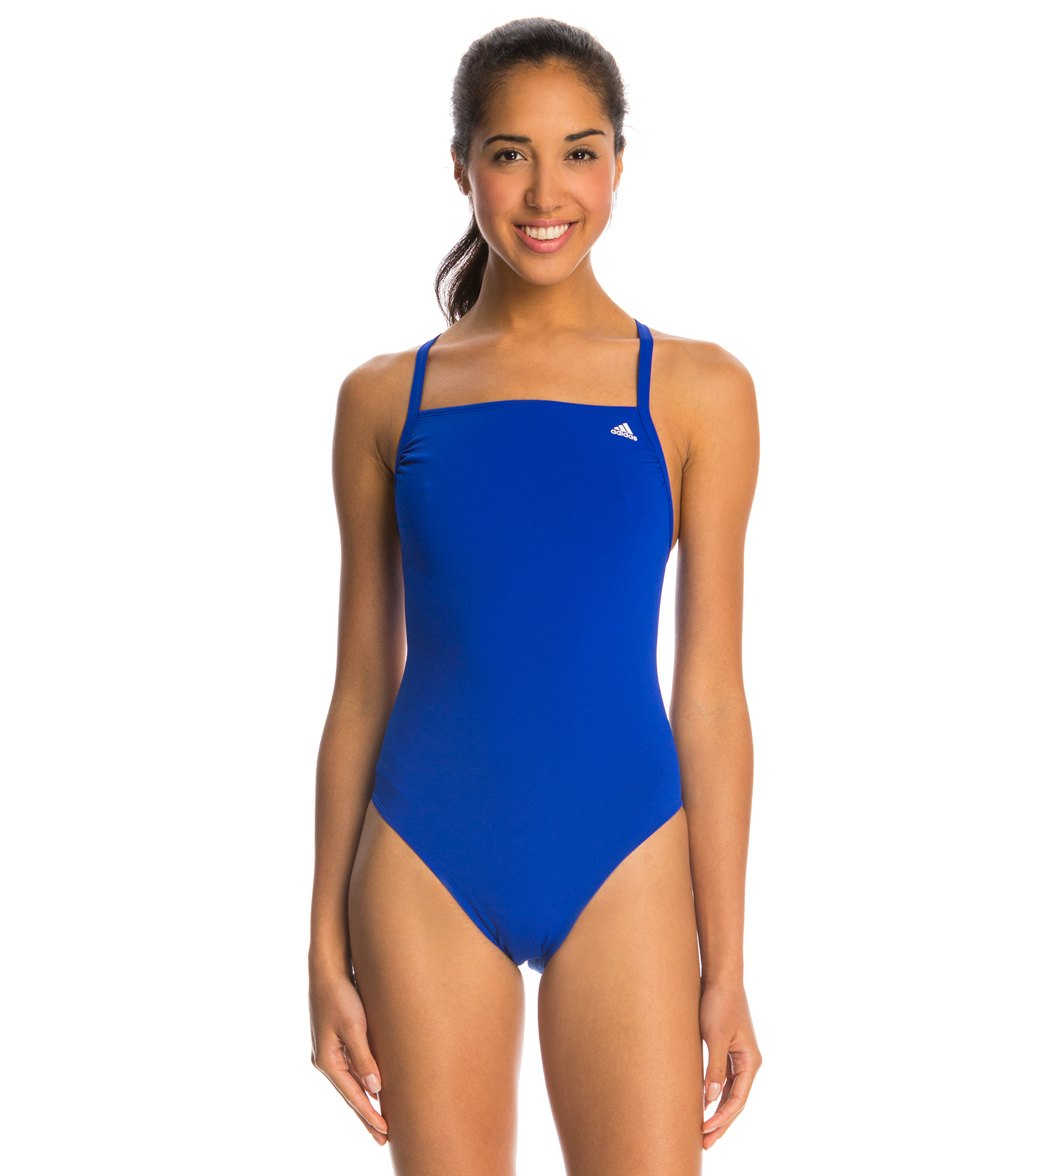 Adidas Women's Infinitex + Solids Vortex Back One Piece Swimsuit - Blue 22 Polyester/Pbt - Swimoutlet.com